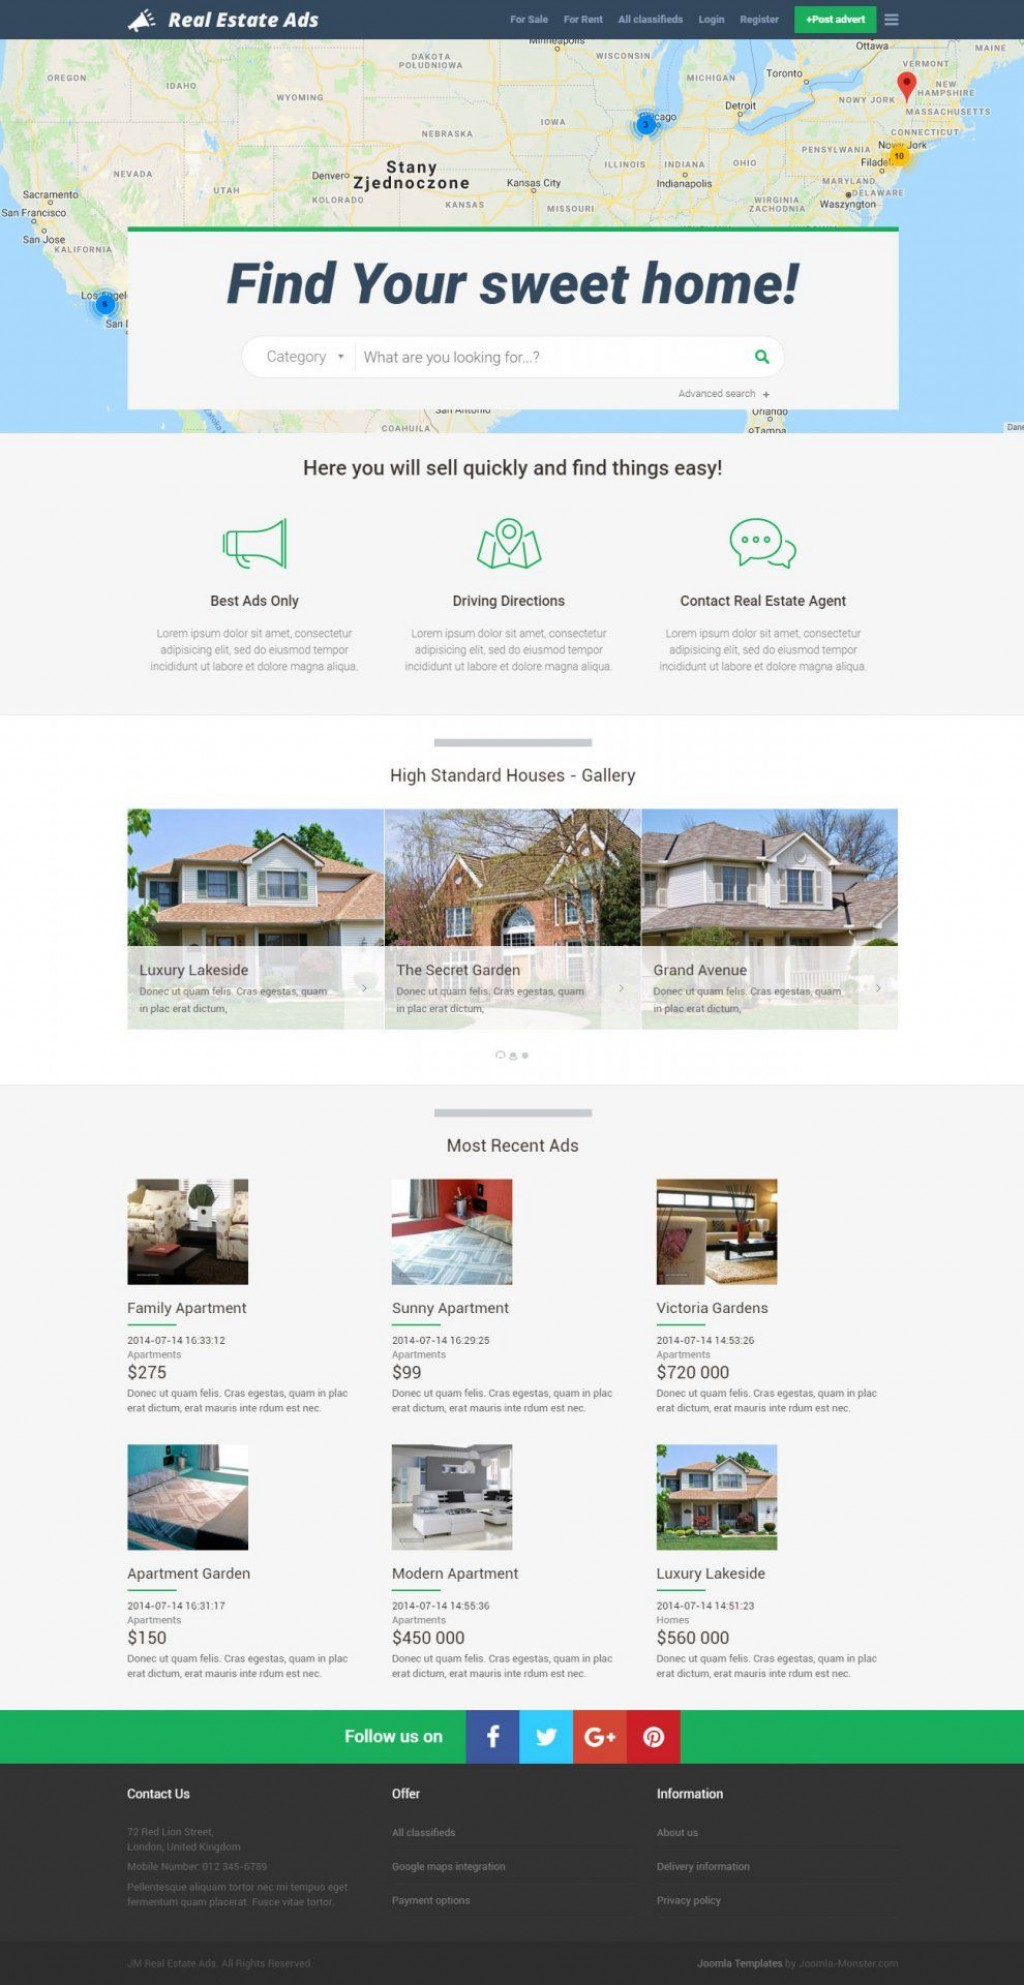 005 Impressive Real Estate Ad Template High Resolution  Templates Commercial Free Listing Flyer InstagramLarge